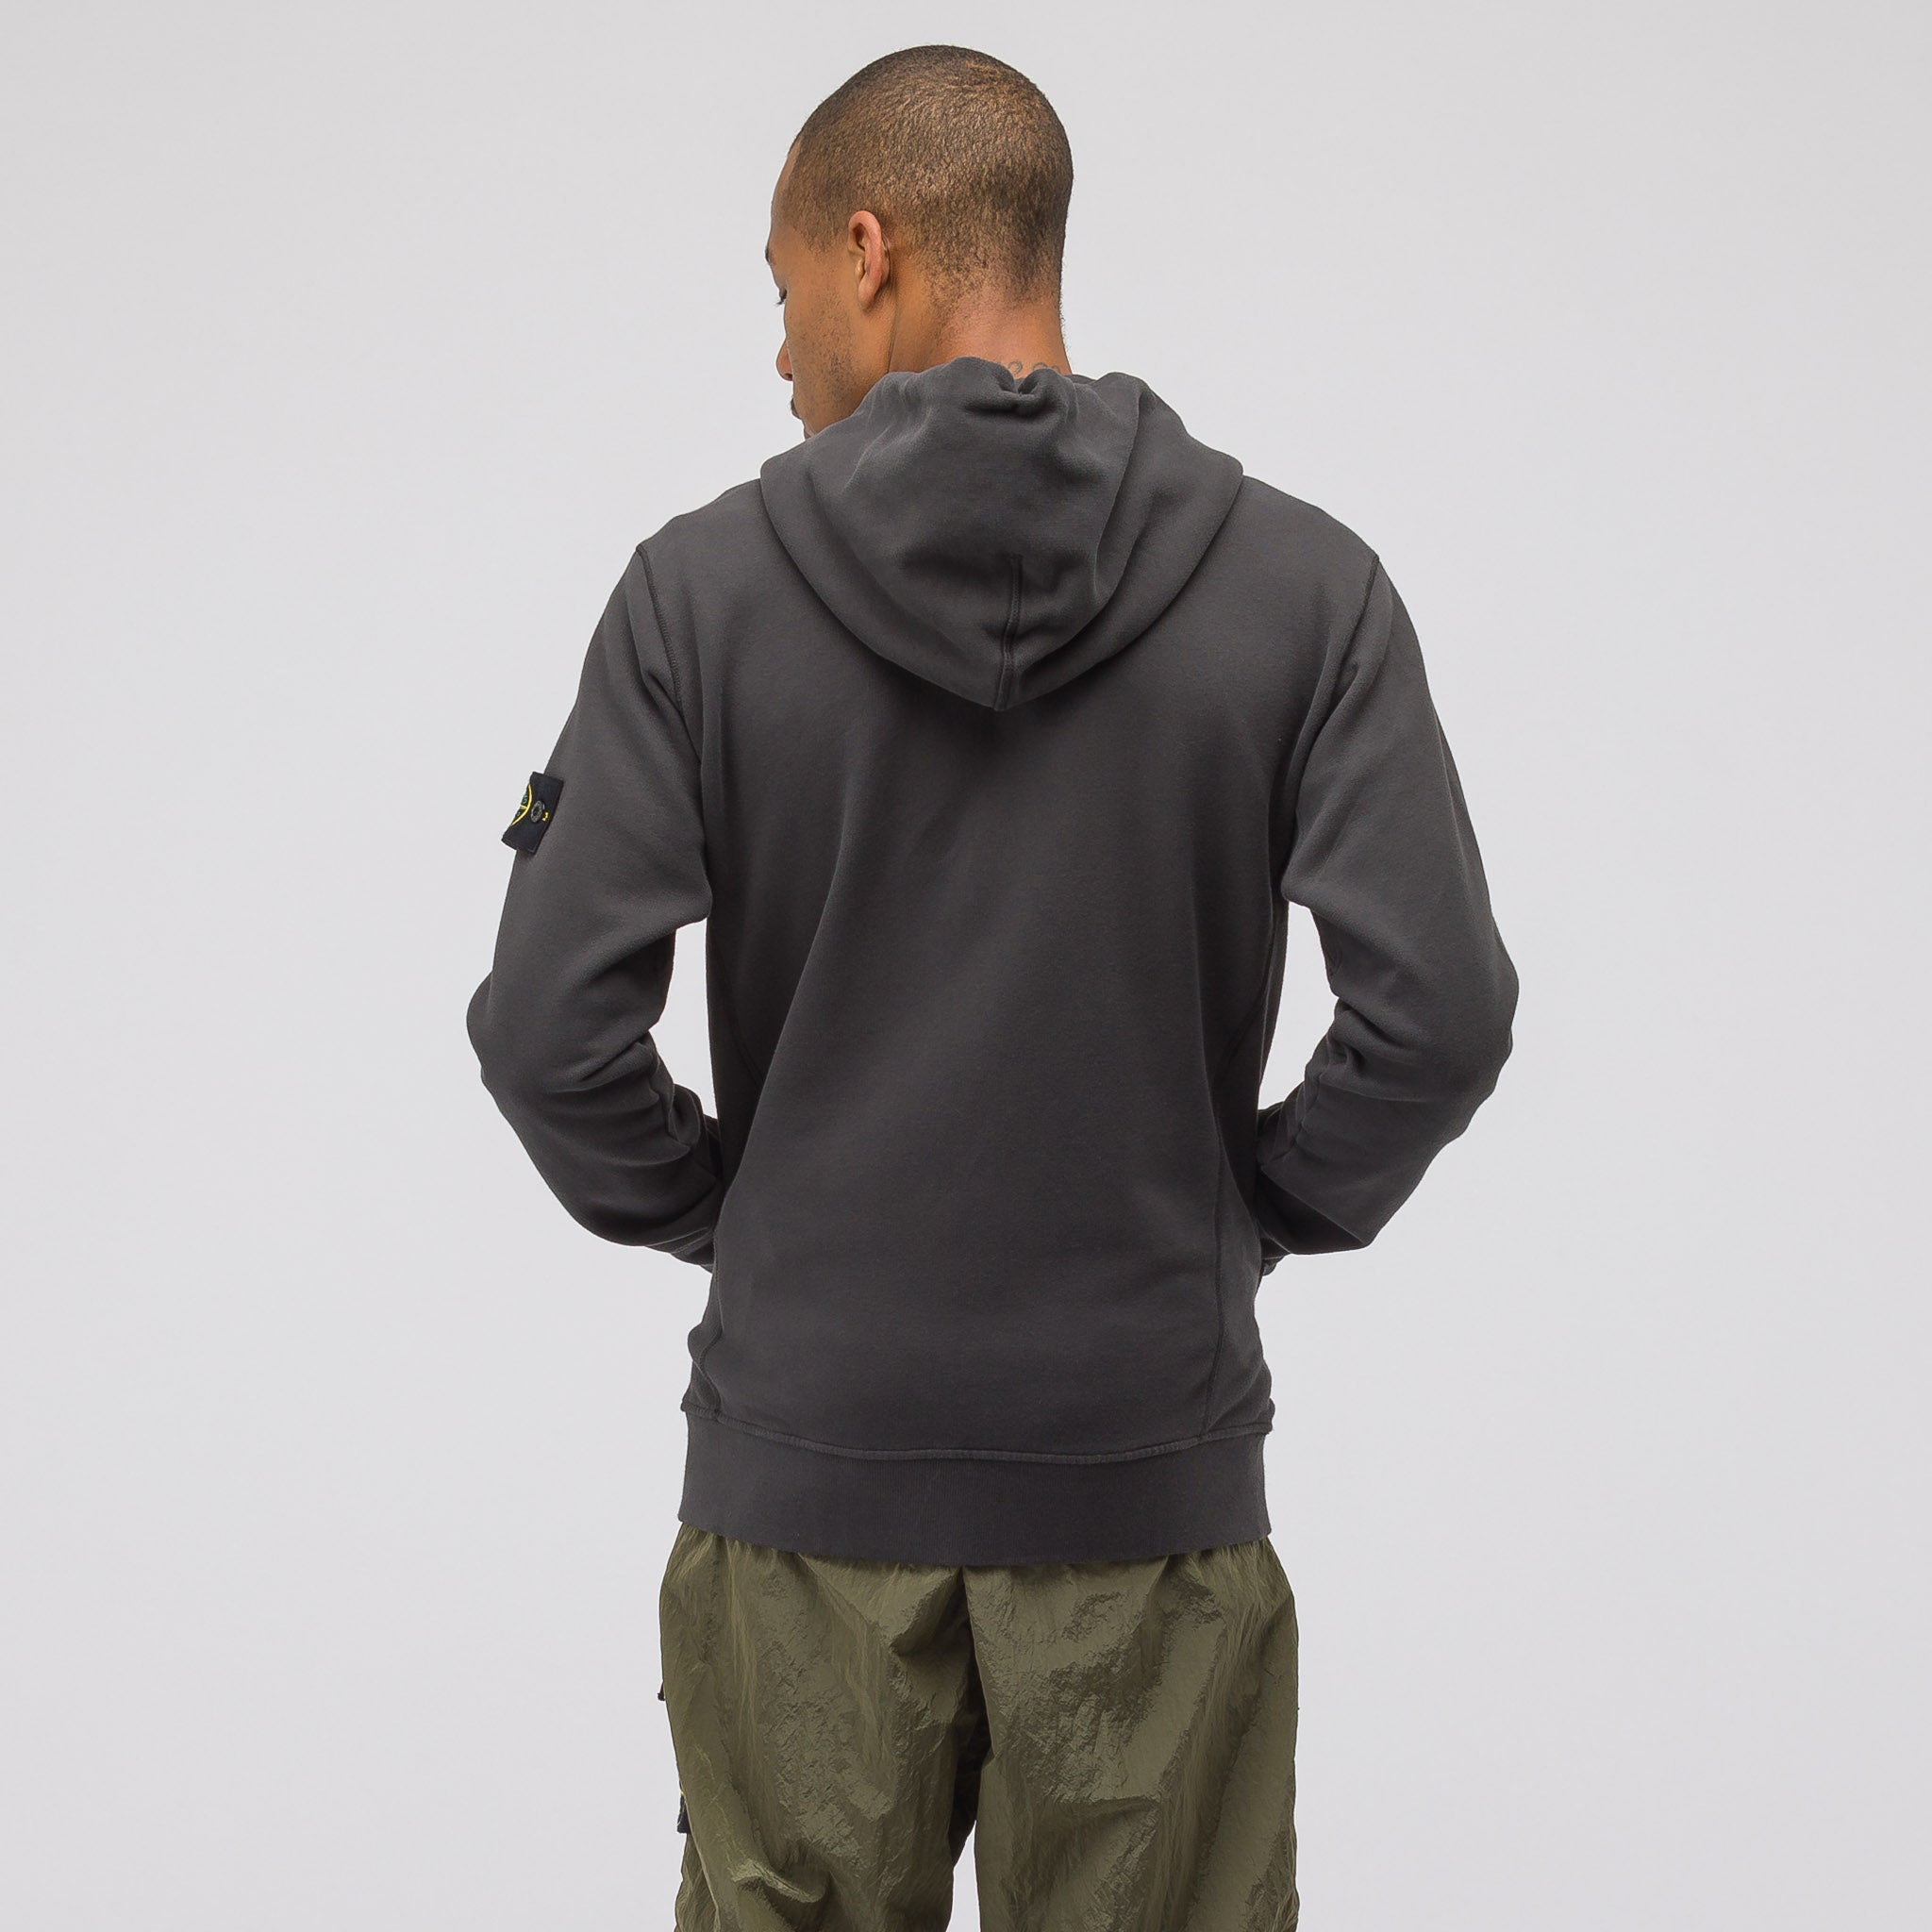 60220 Zip-Up Sweatshirt in Dark Grey